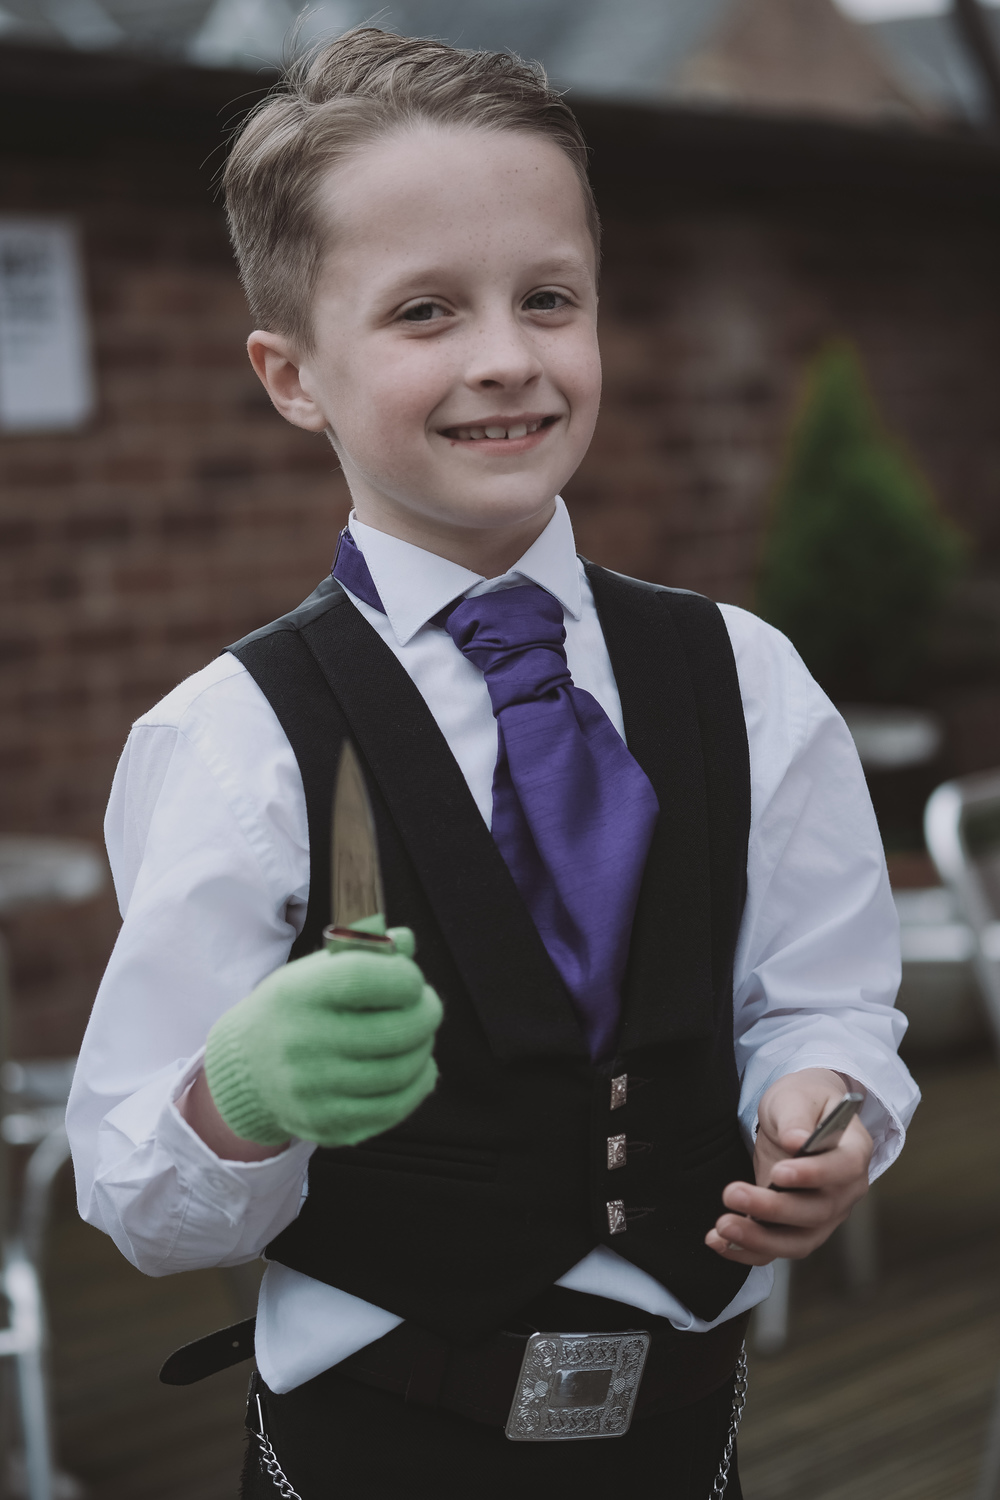 Newcastle Wedding Photographer // Page boy poses with knife